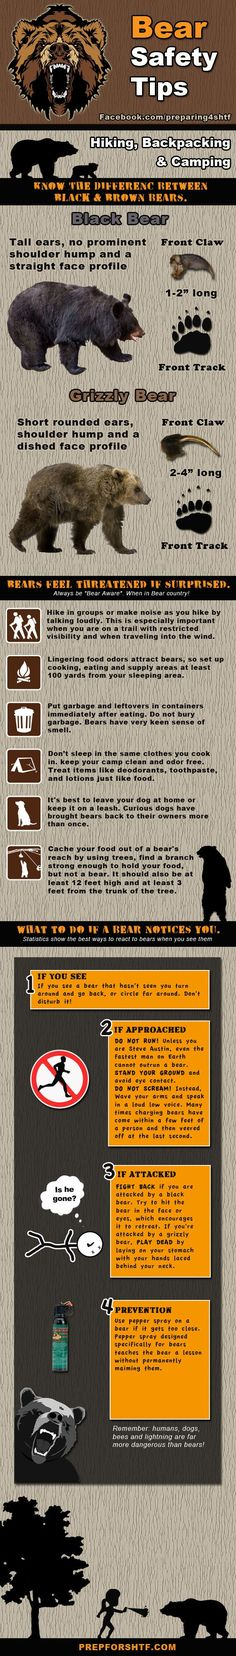 Bear Safety Infographic